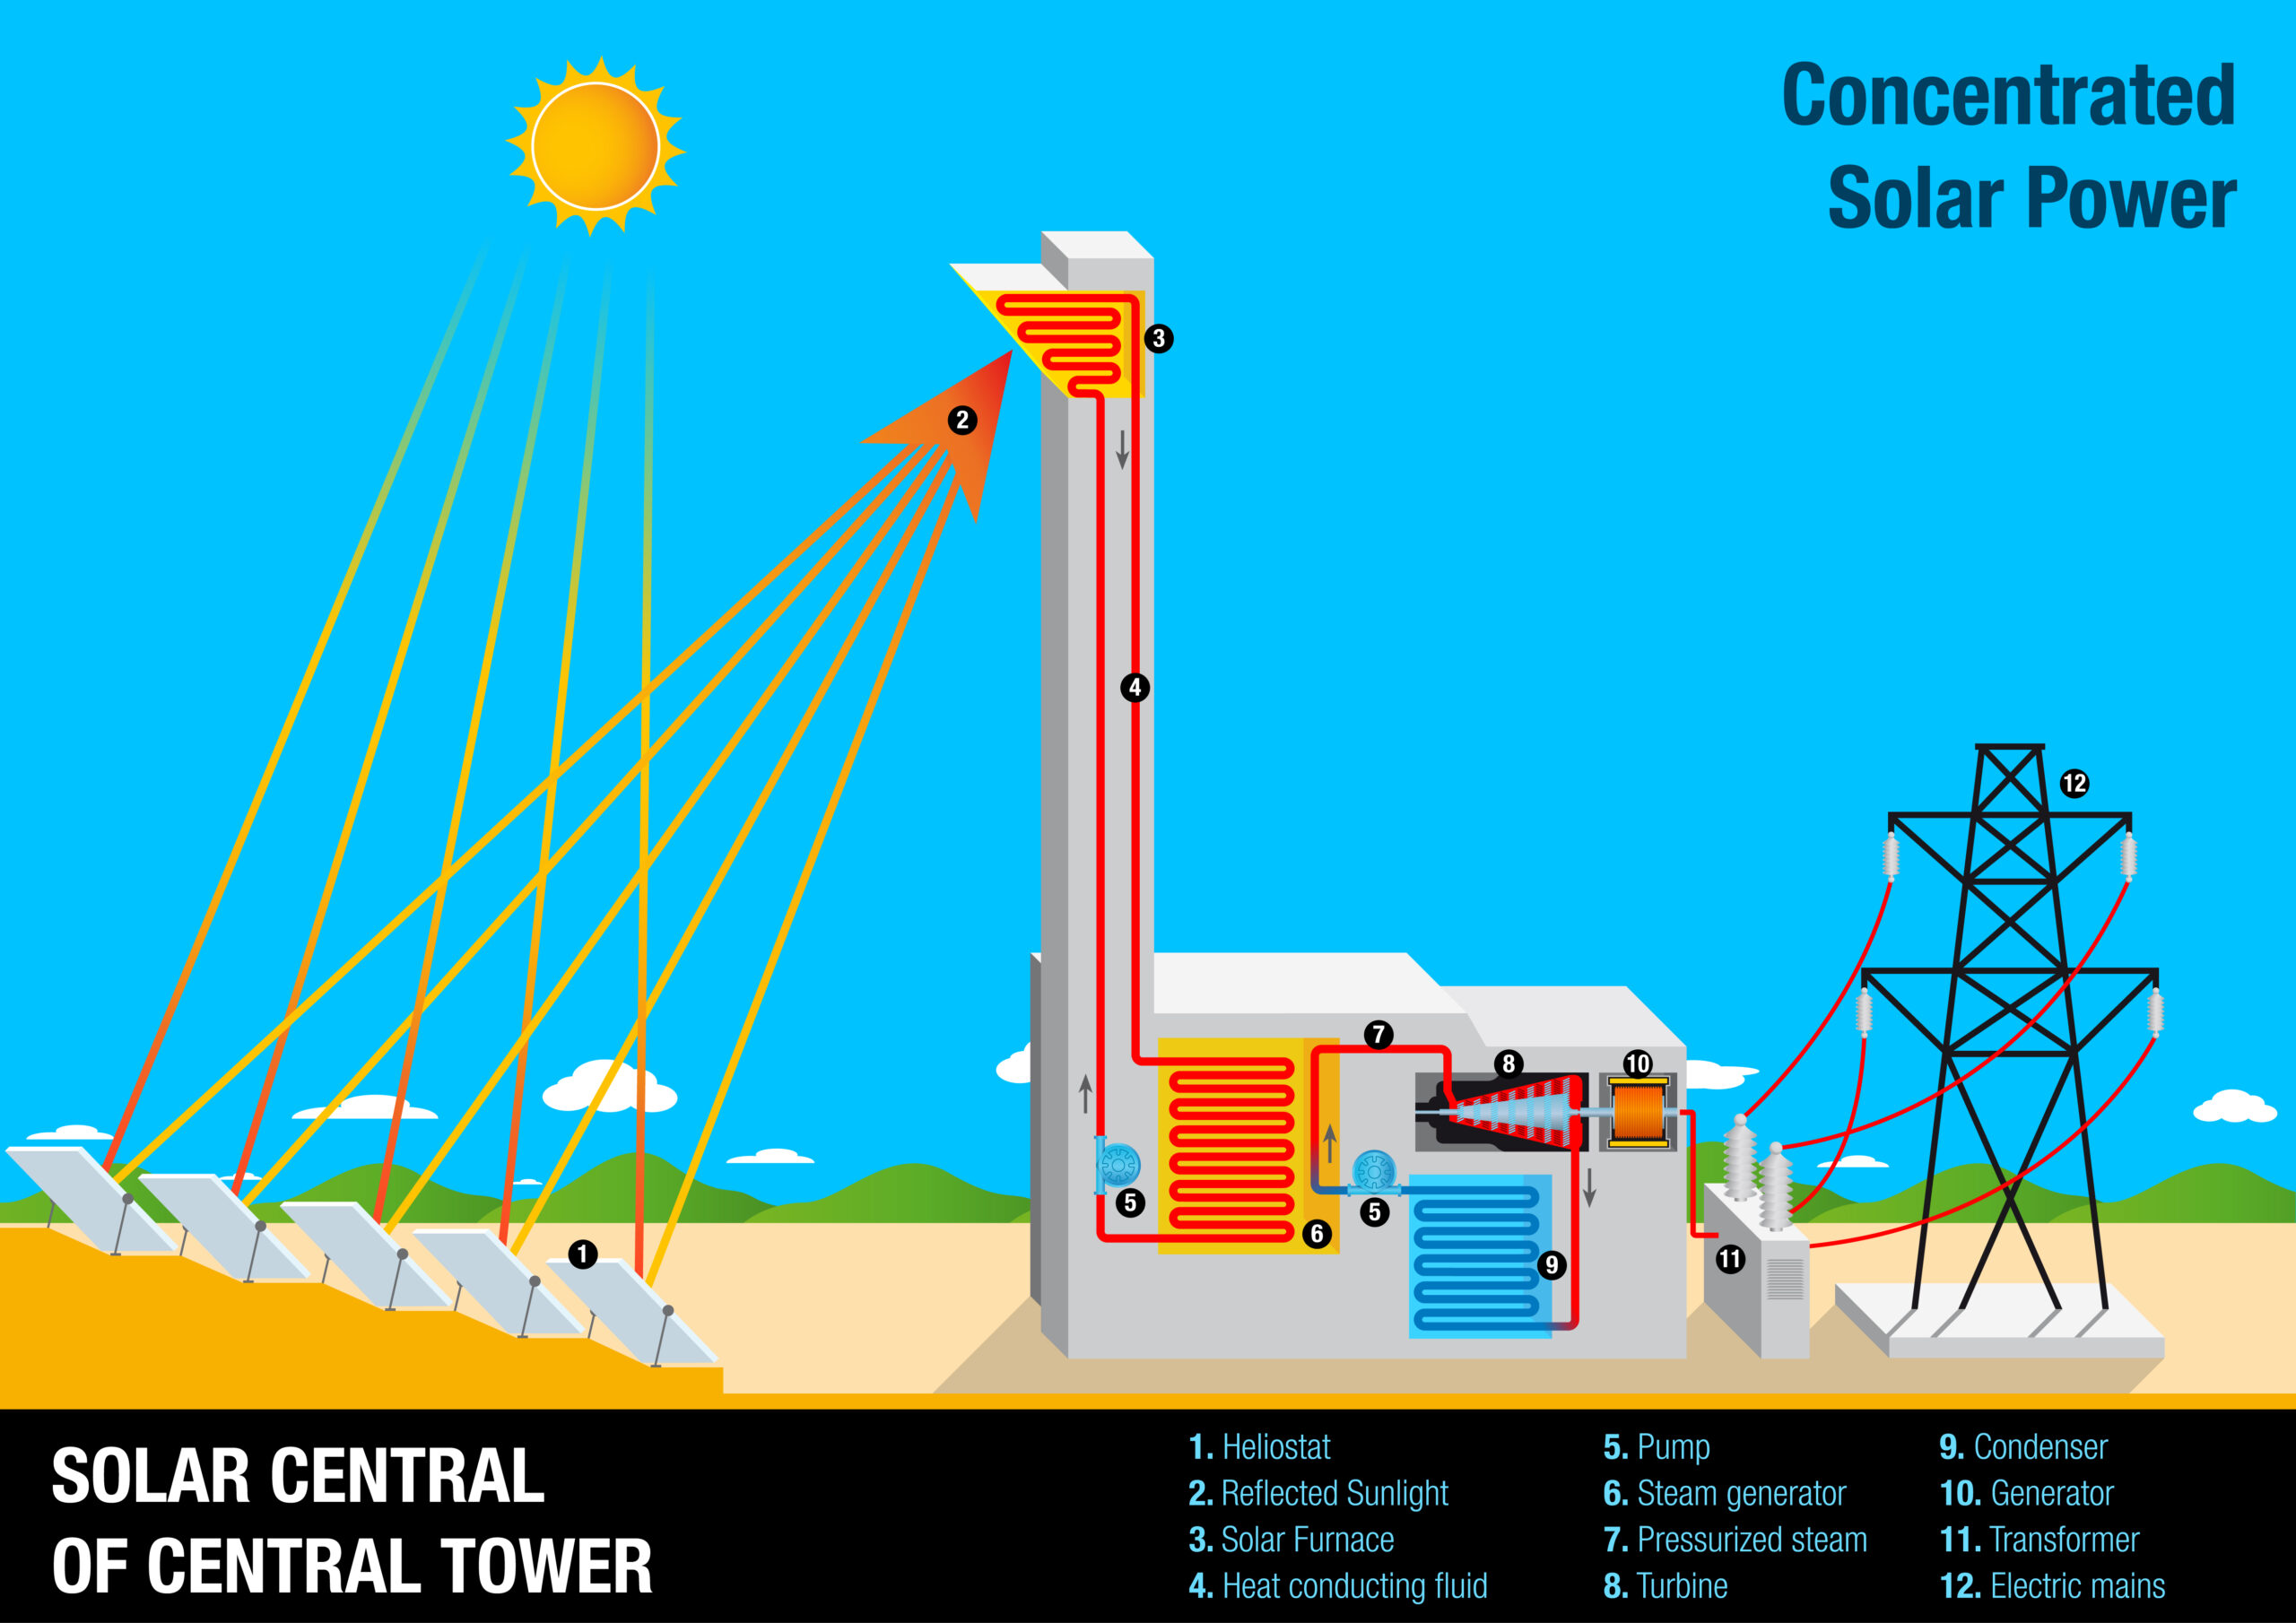 An infographic showing a concentrated solar power plant using a central tower to collect solar energy.